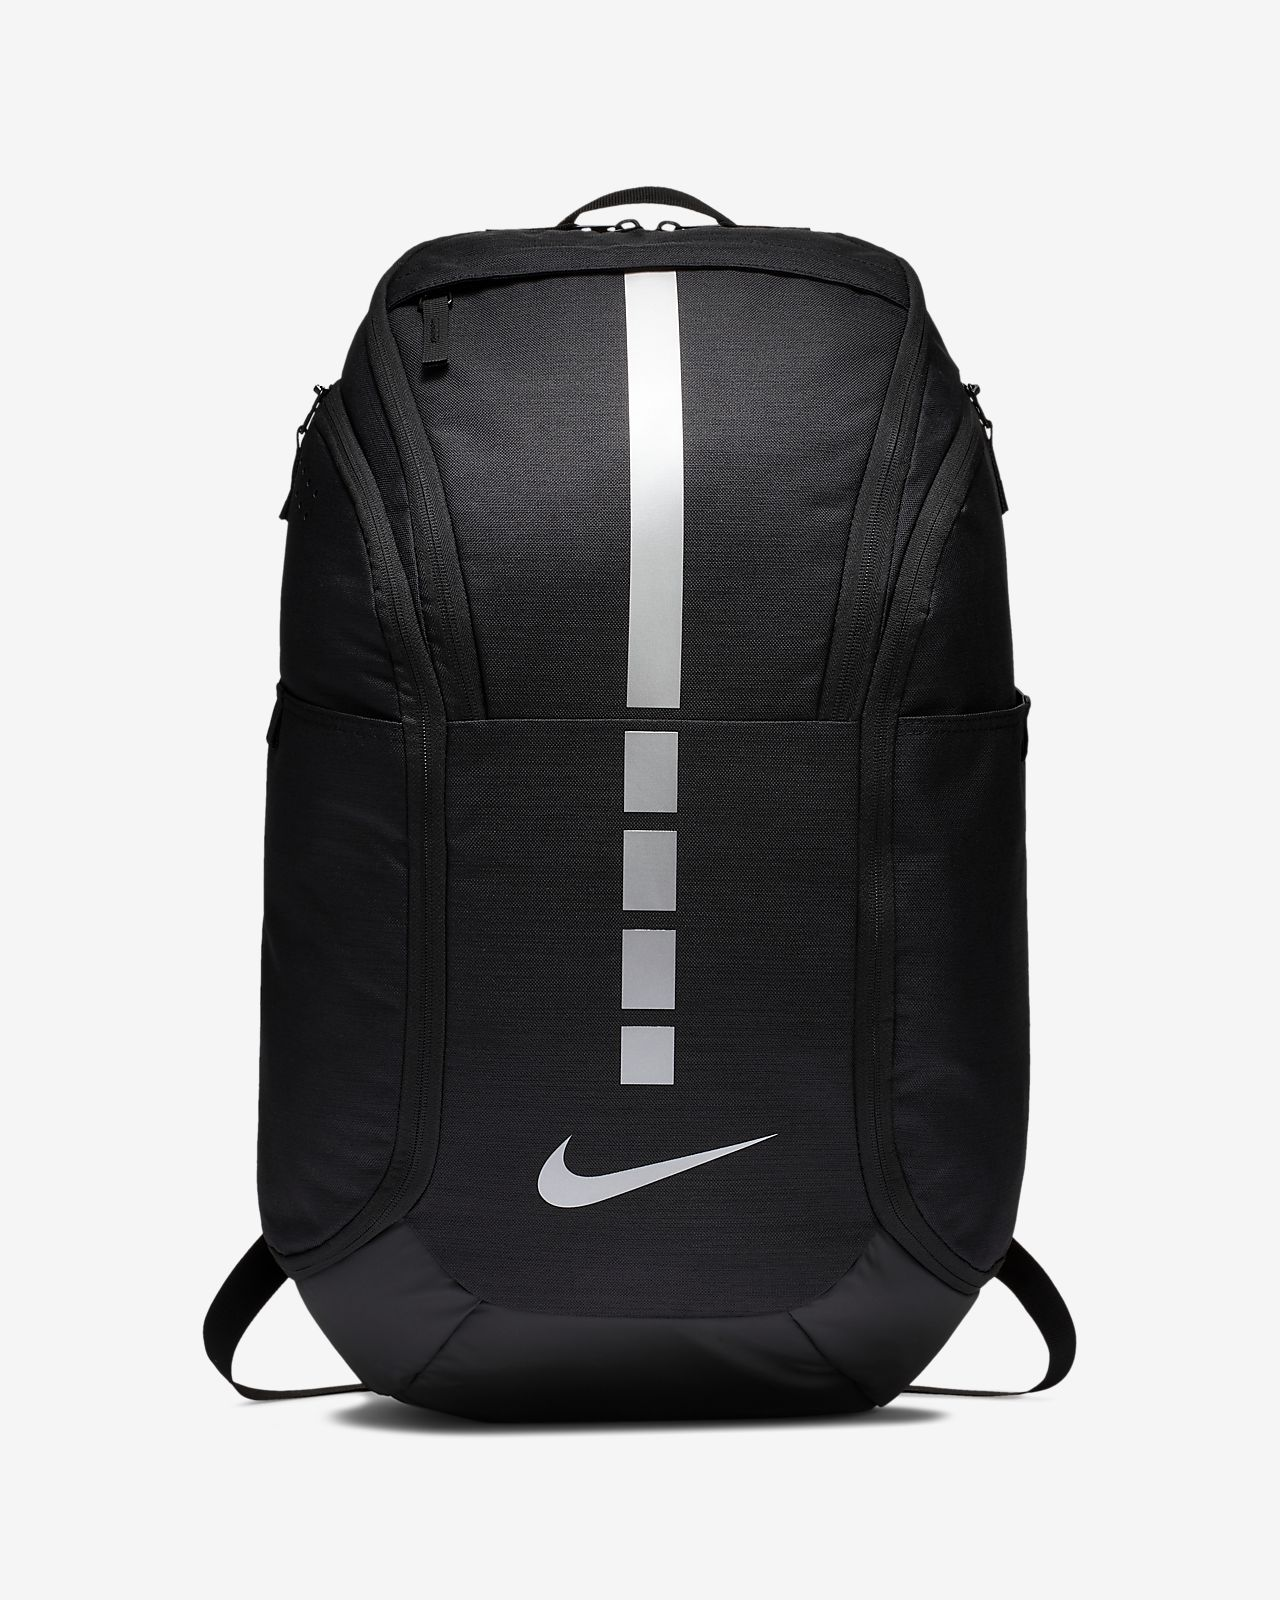 9c28b375f1 Nike Hoops Elite Pro Basketball Backpack. Nike.com SG